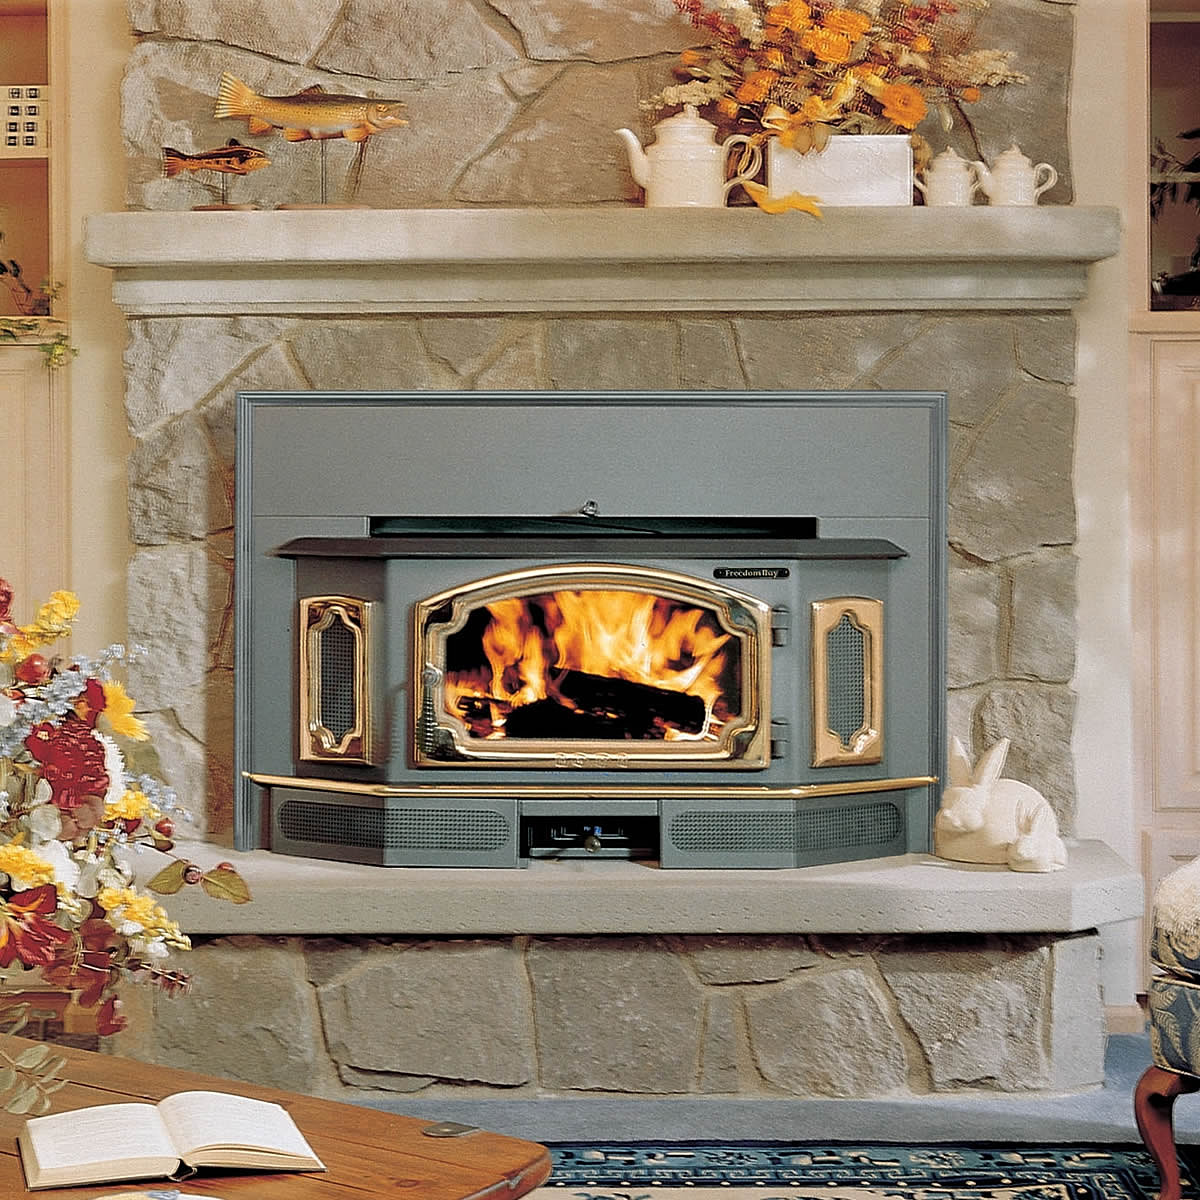 Freedom Bay Wood Stove Insert - Home Fire Stove, Salem Oregon